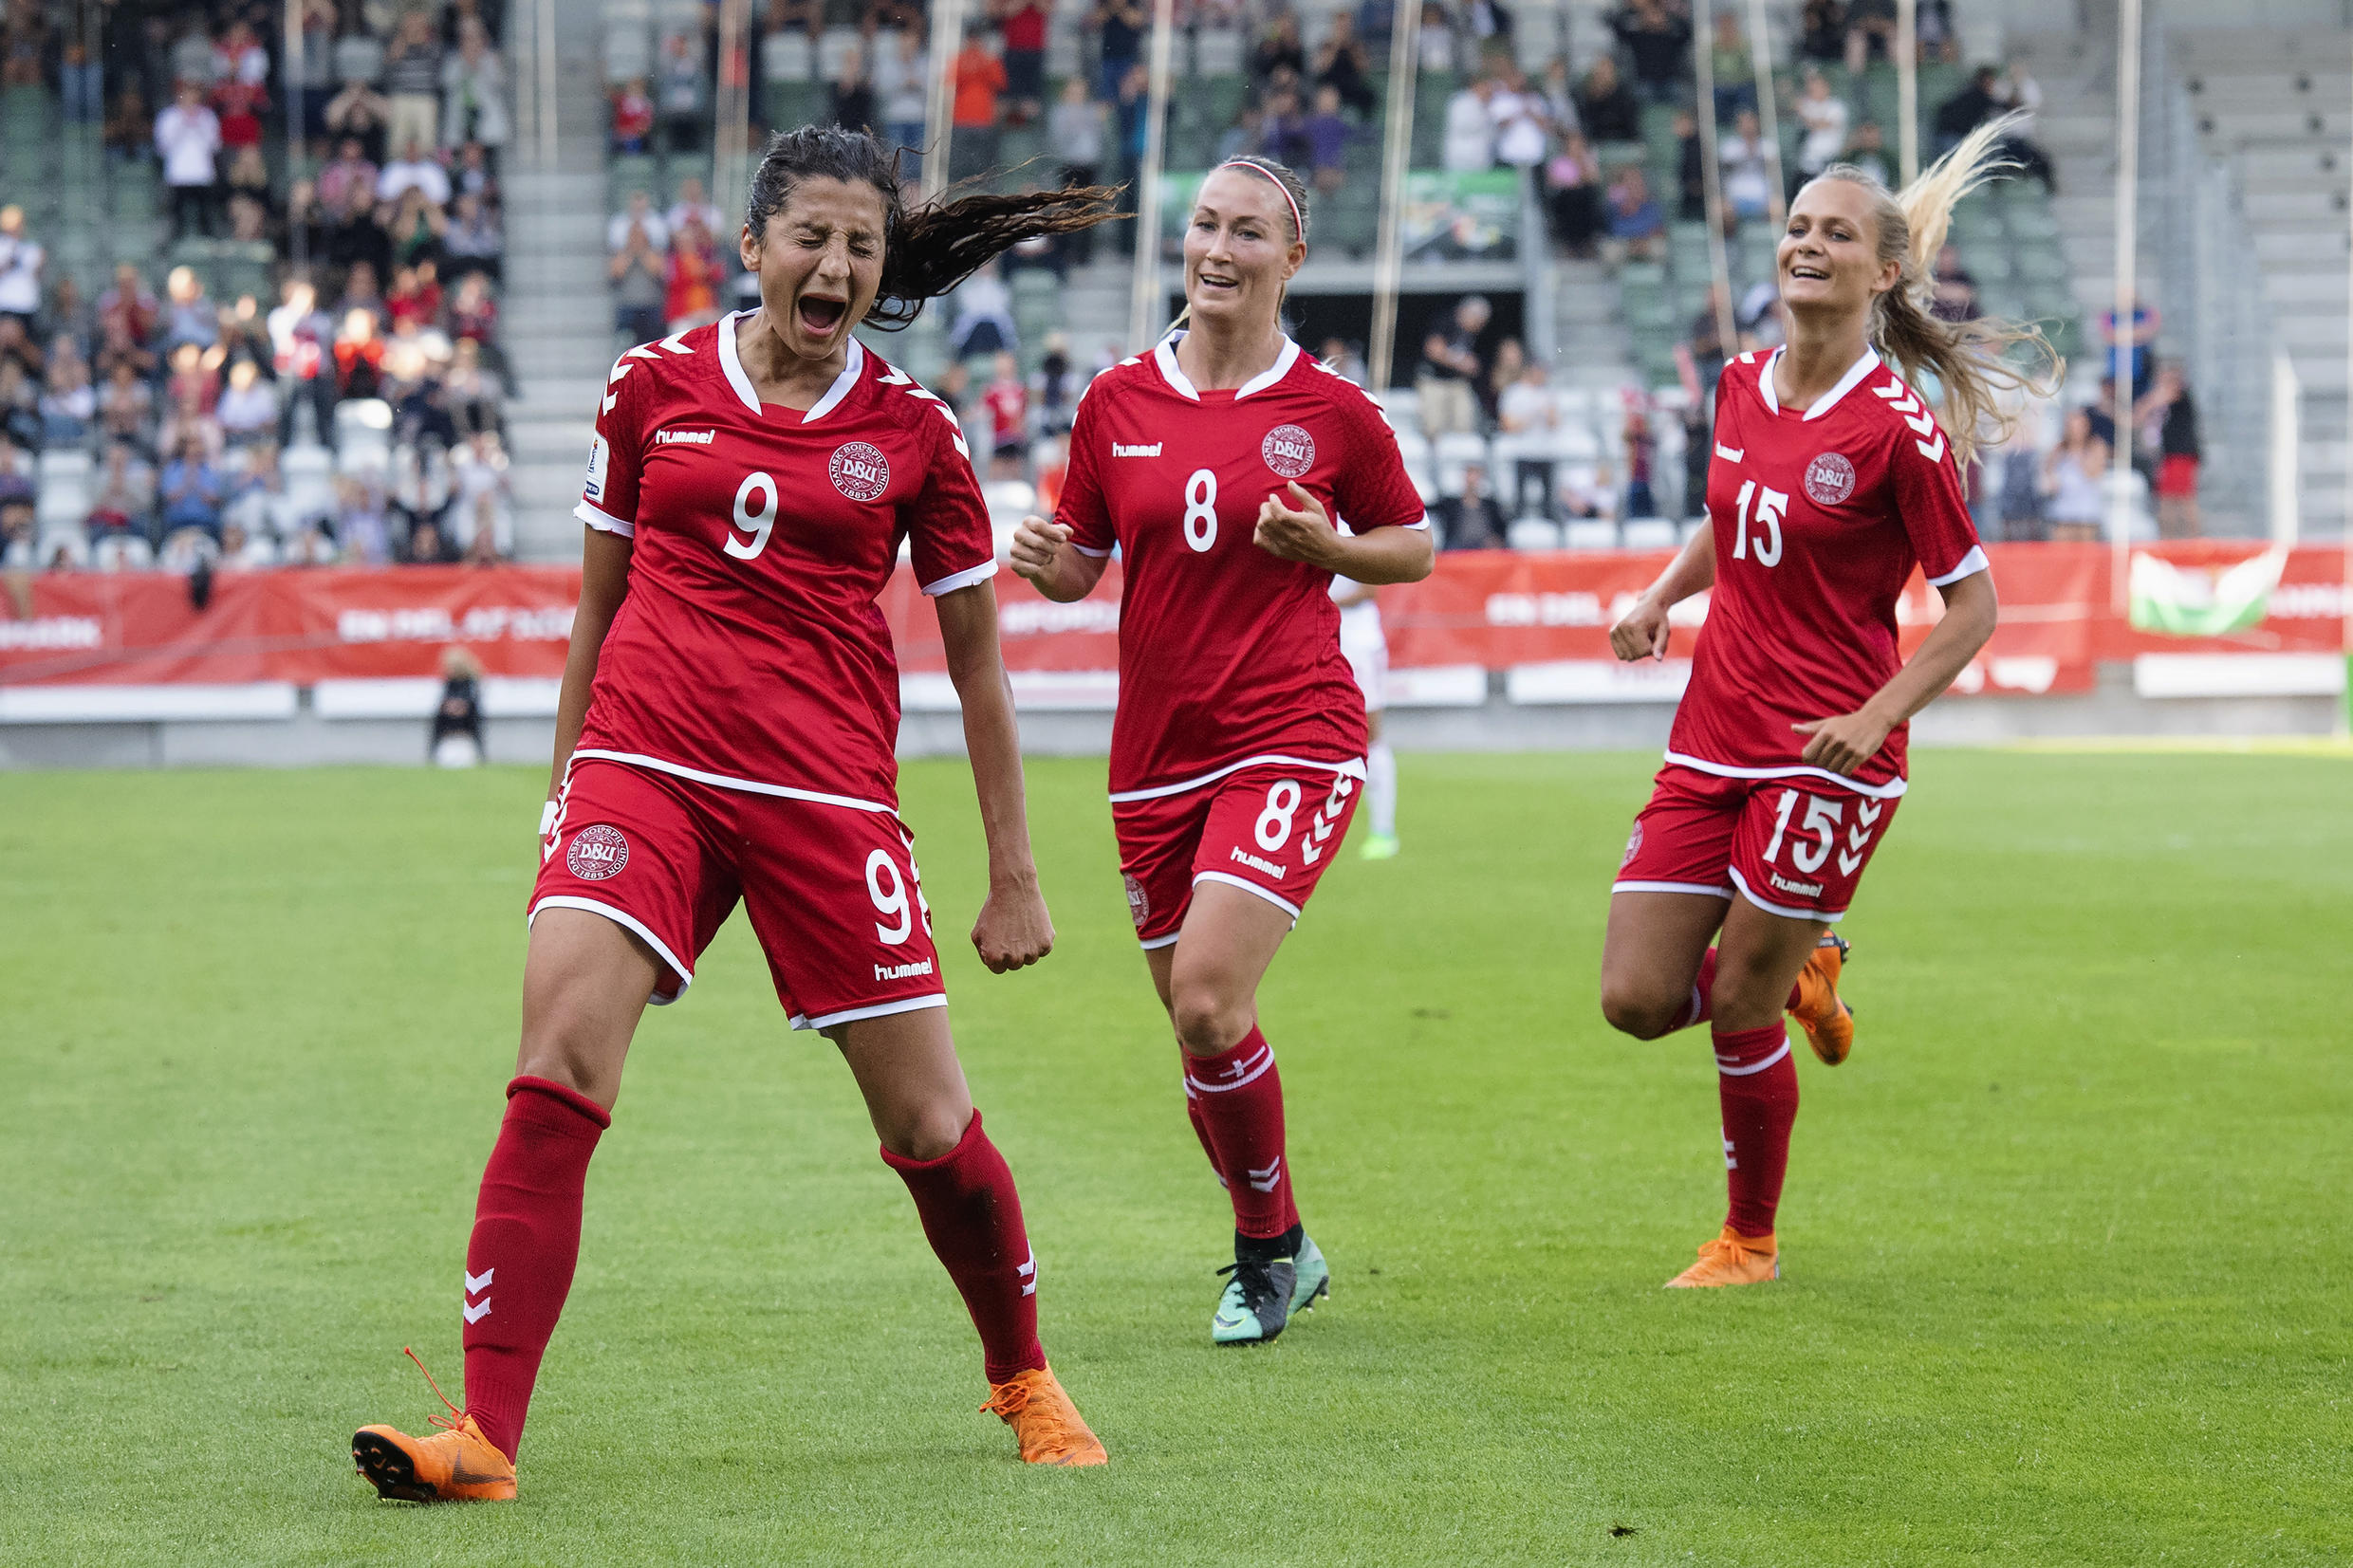 Nadim (L) with Danish team mates Theresa NIelsen and Frederikke Thogersen, celebrates after scoring against Hungary during their FIFA World Cup 2019 qualifier match at Viborg Stadium, Denmark Tuesday, June 12, 2018.